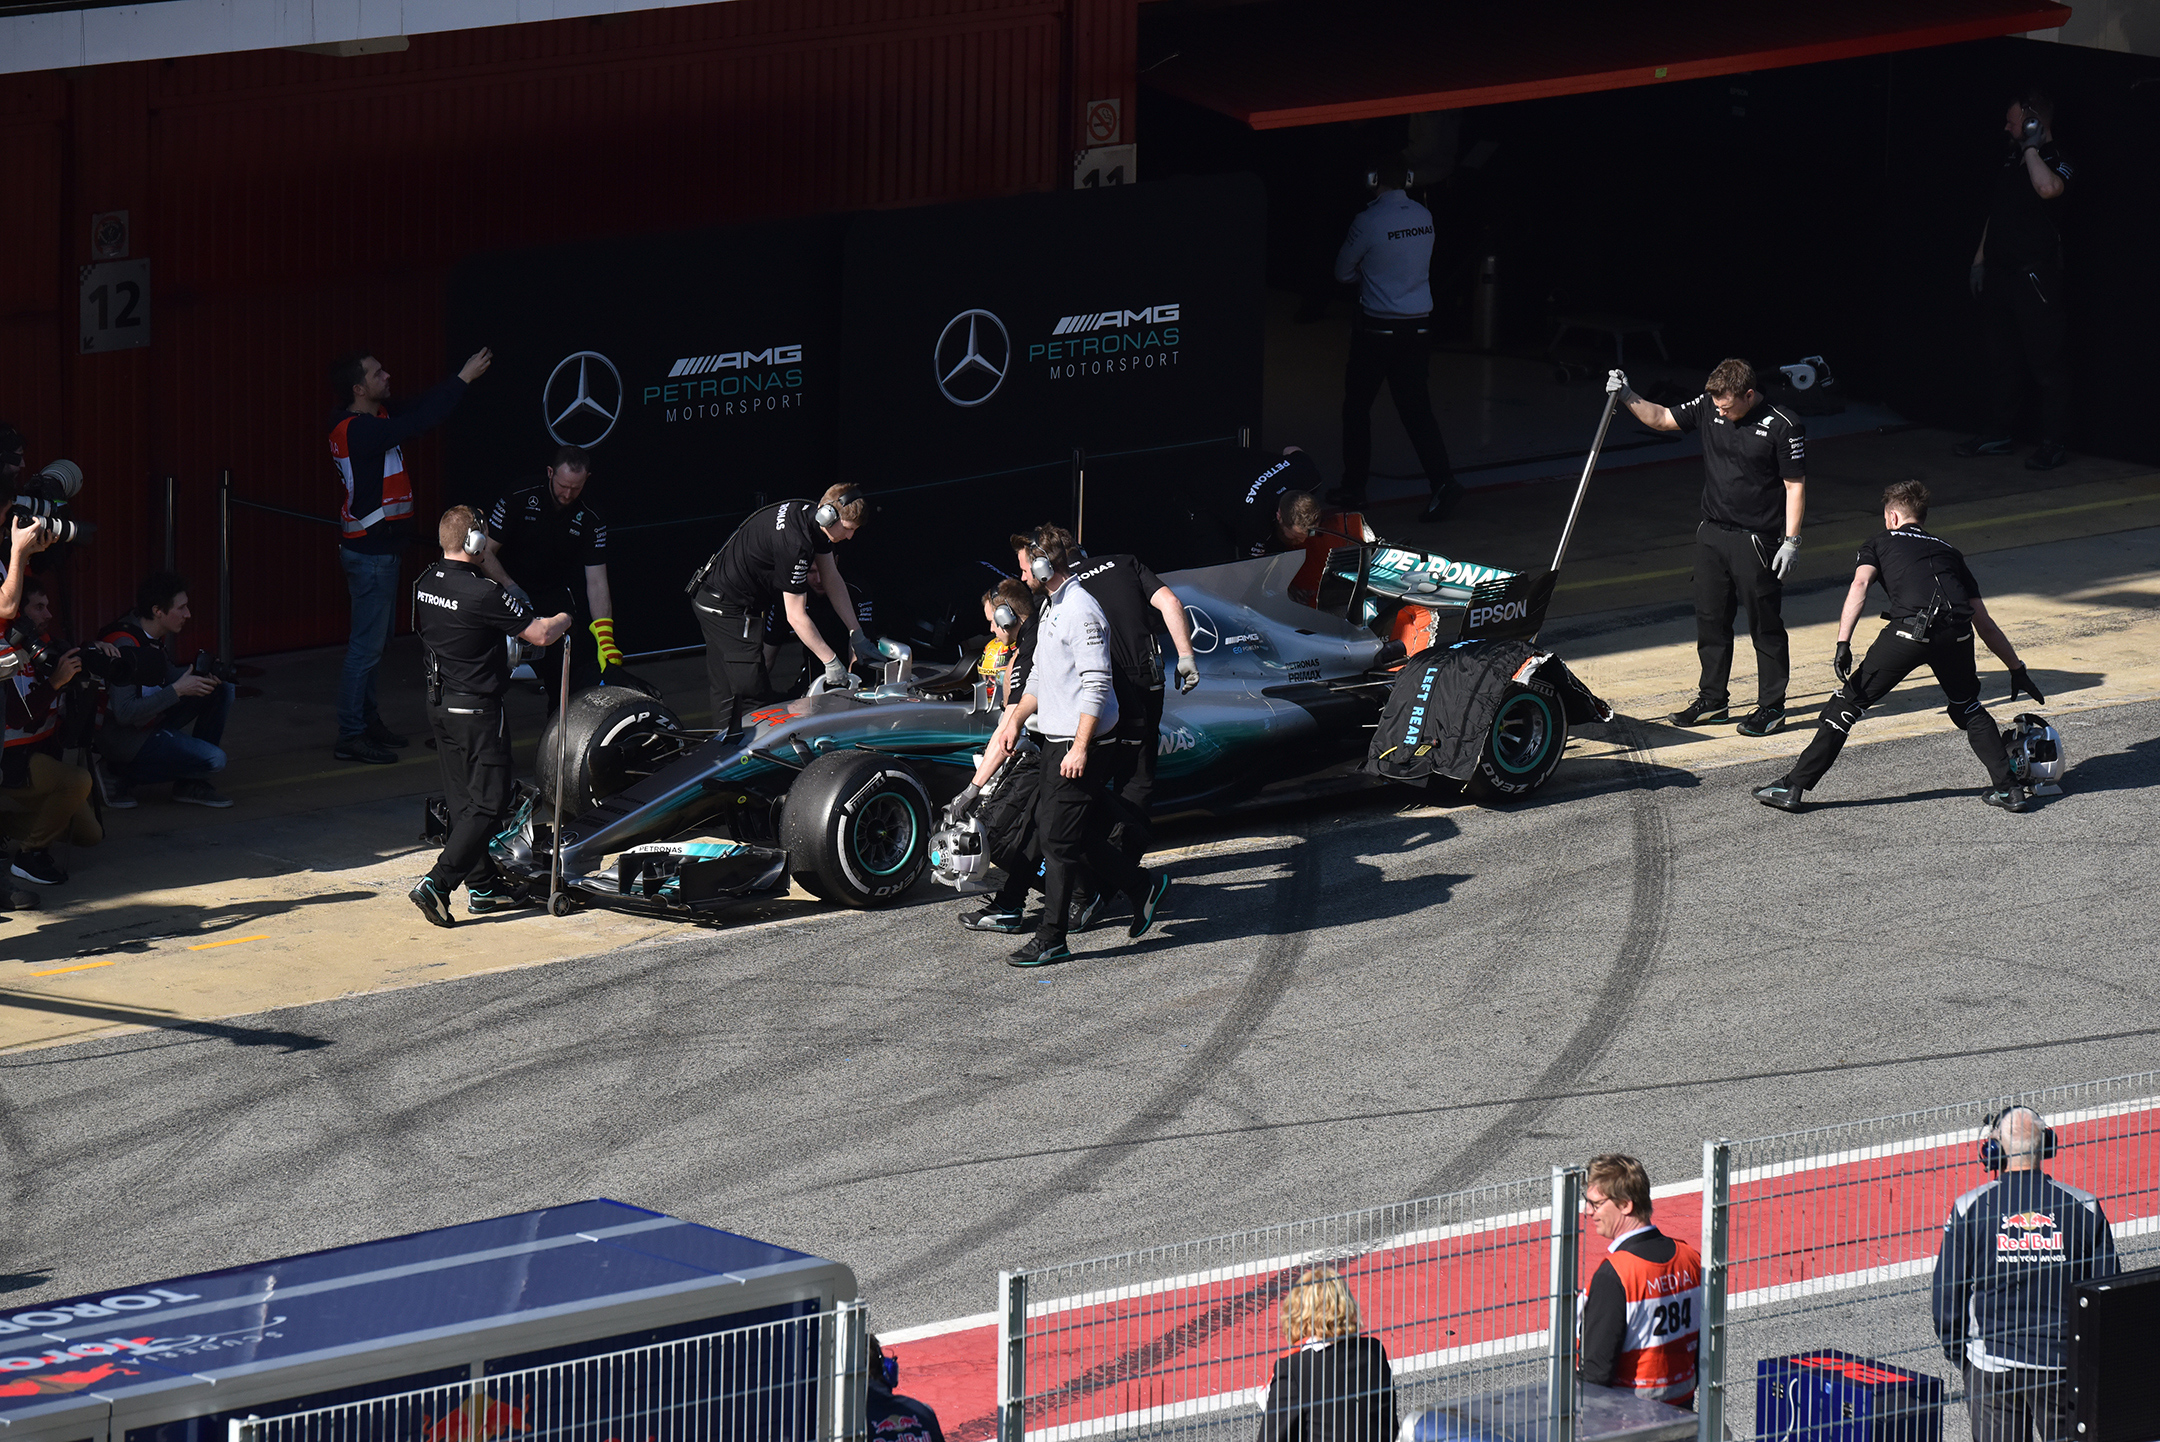 F1 Testday pitstop - 2017 - Mercedes-AMG F1 W08 - photo by Jacques Denis - Team DESIGNMOTEUR